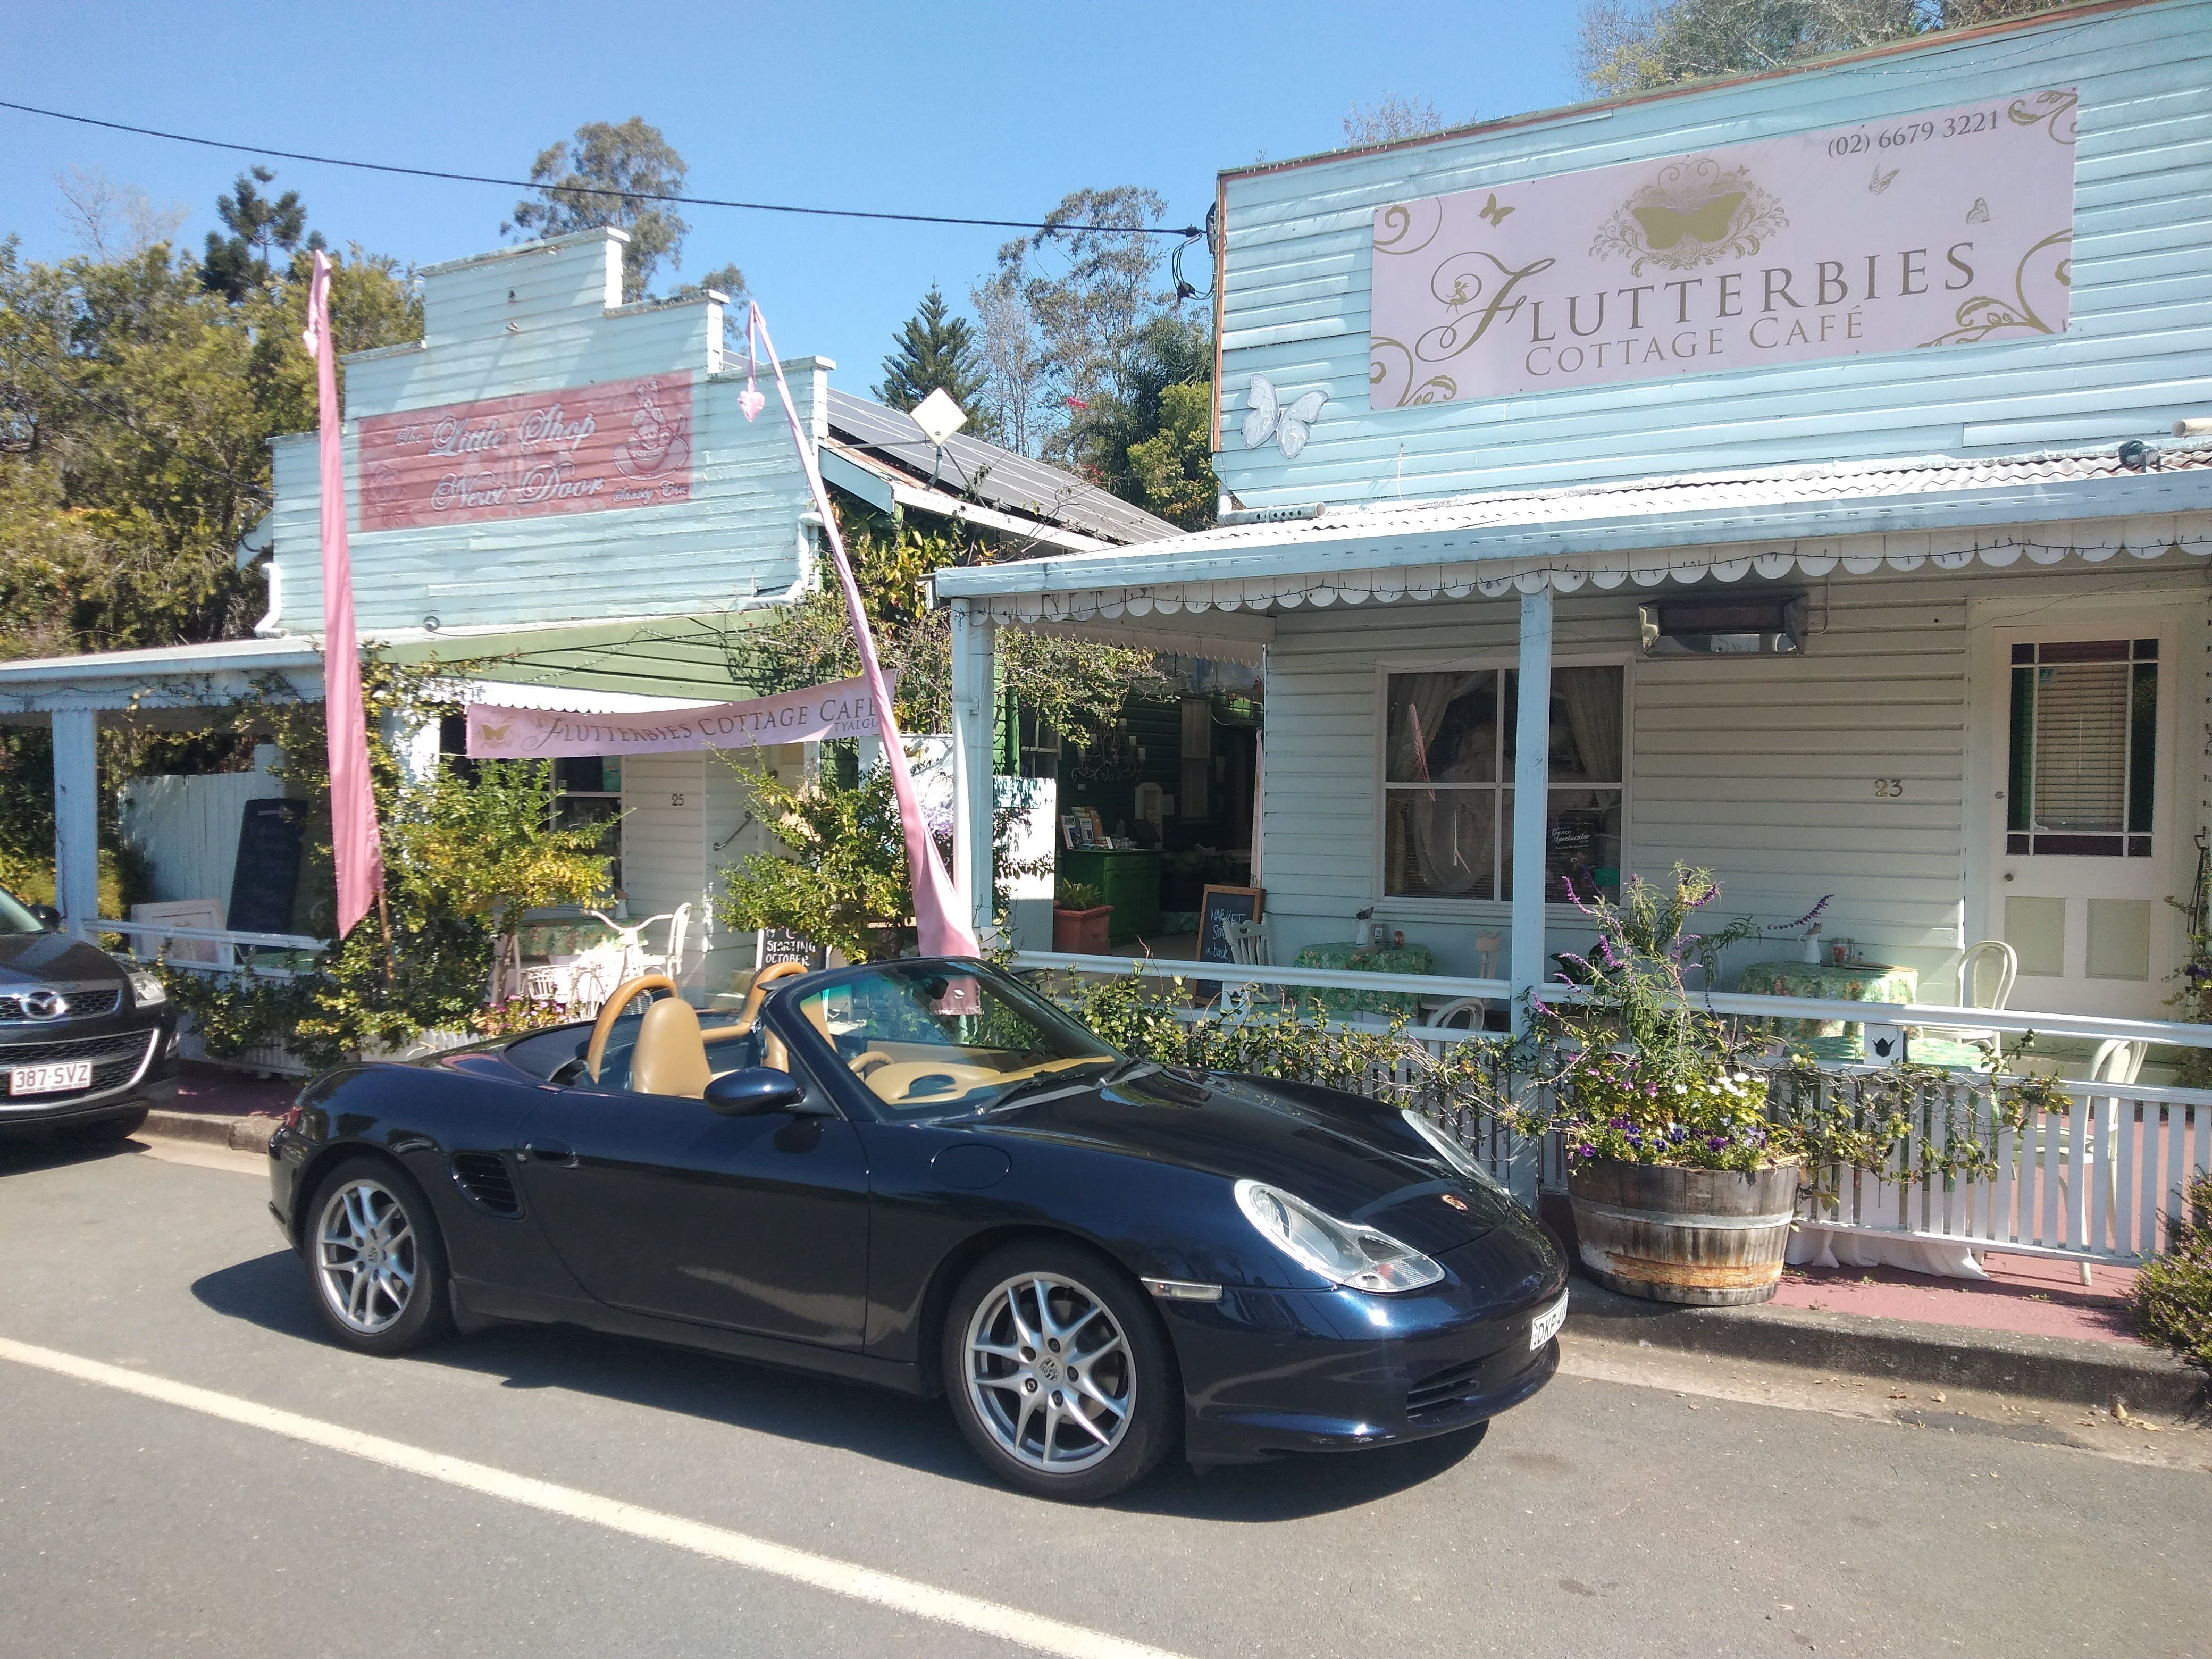 Flutterbies Cottage Cafe - Sydney Tourism